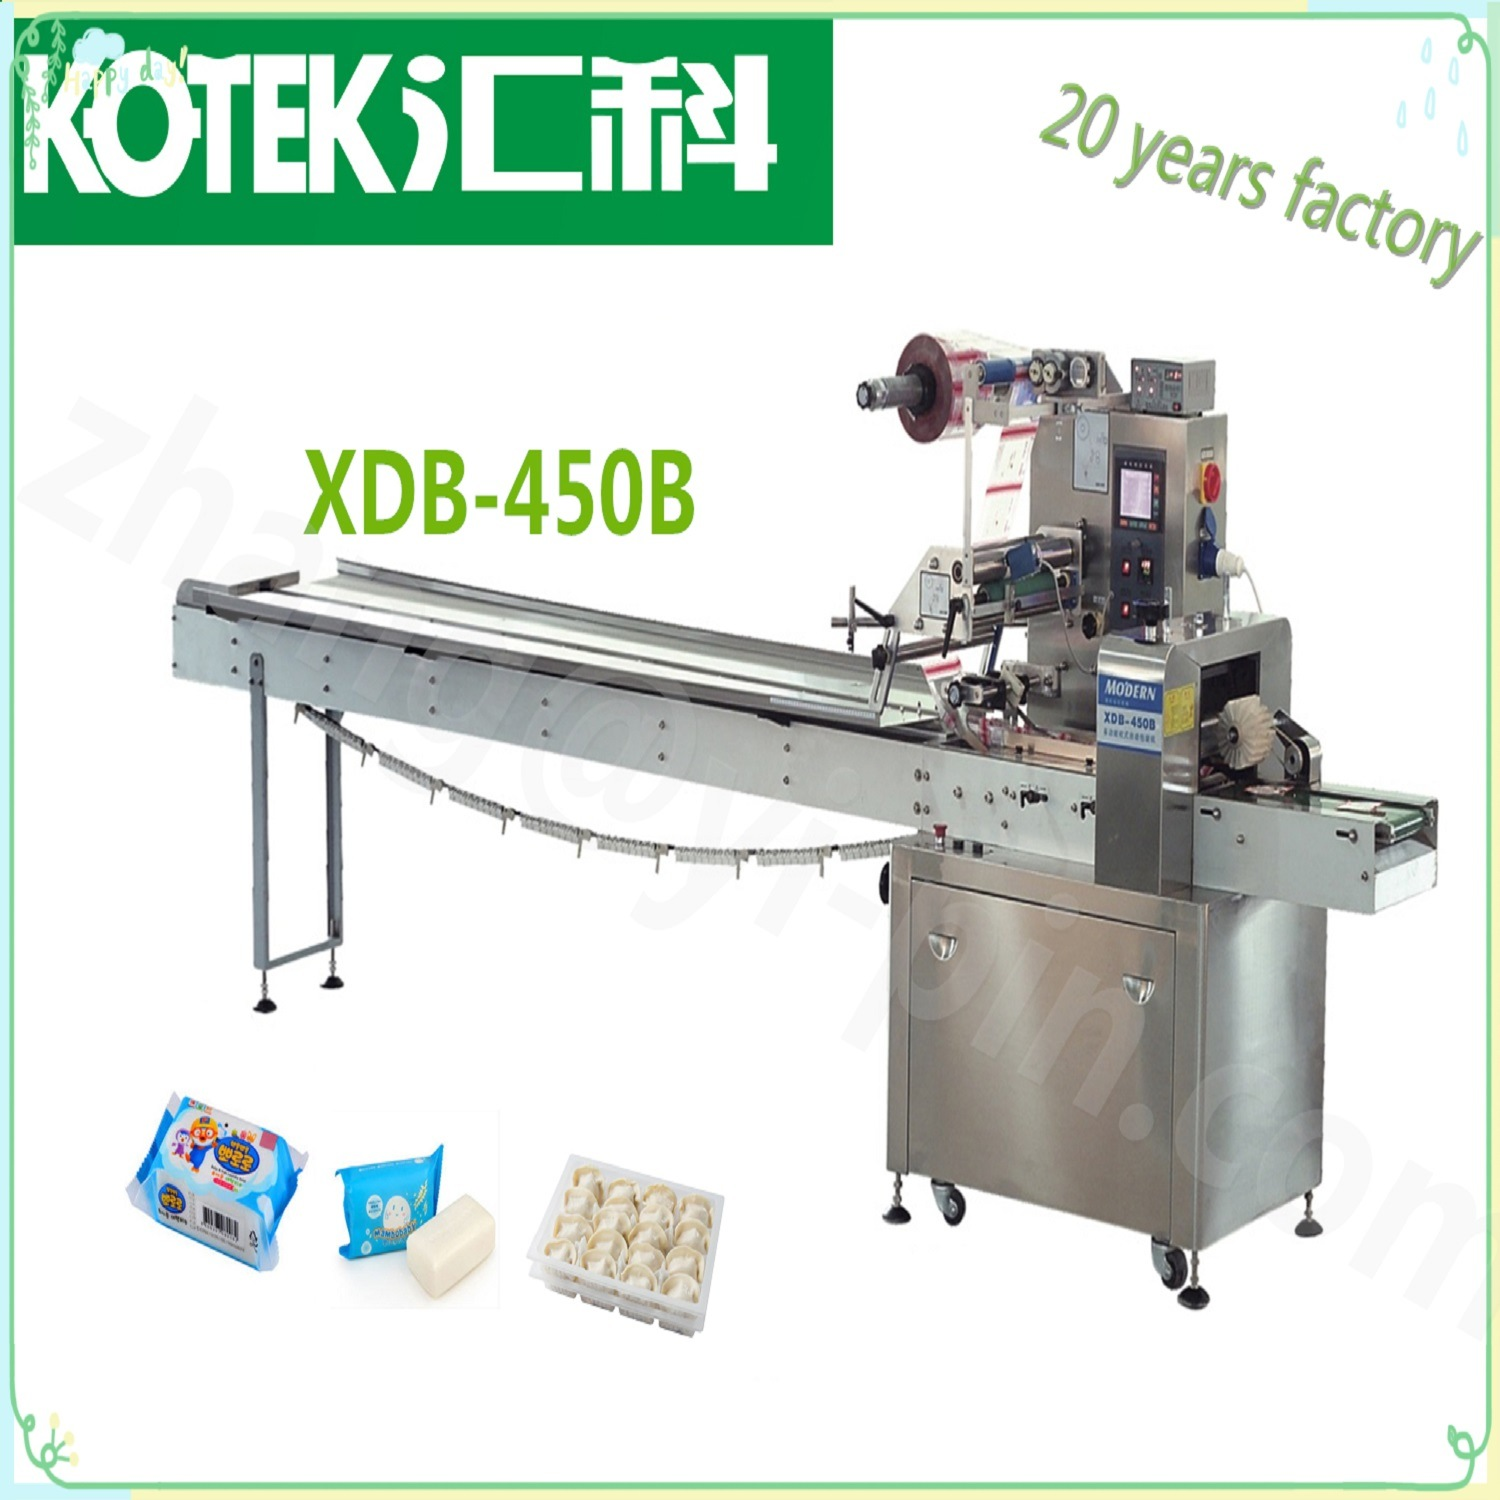 Full Stainless Steel Automatic Film Bag Wrapping Food Mooncake Pillow Packing Machine